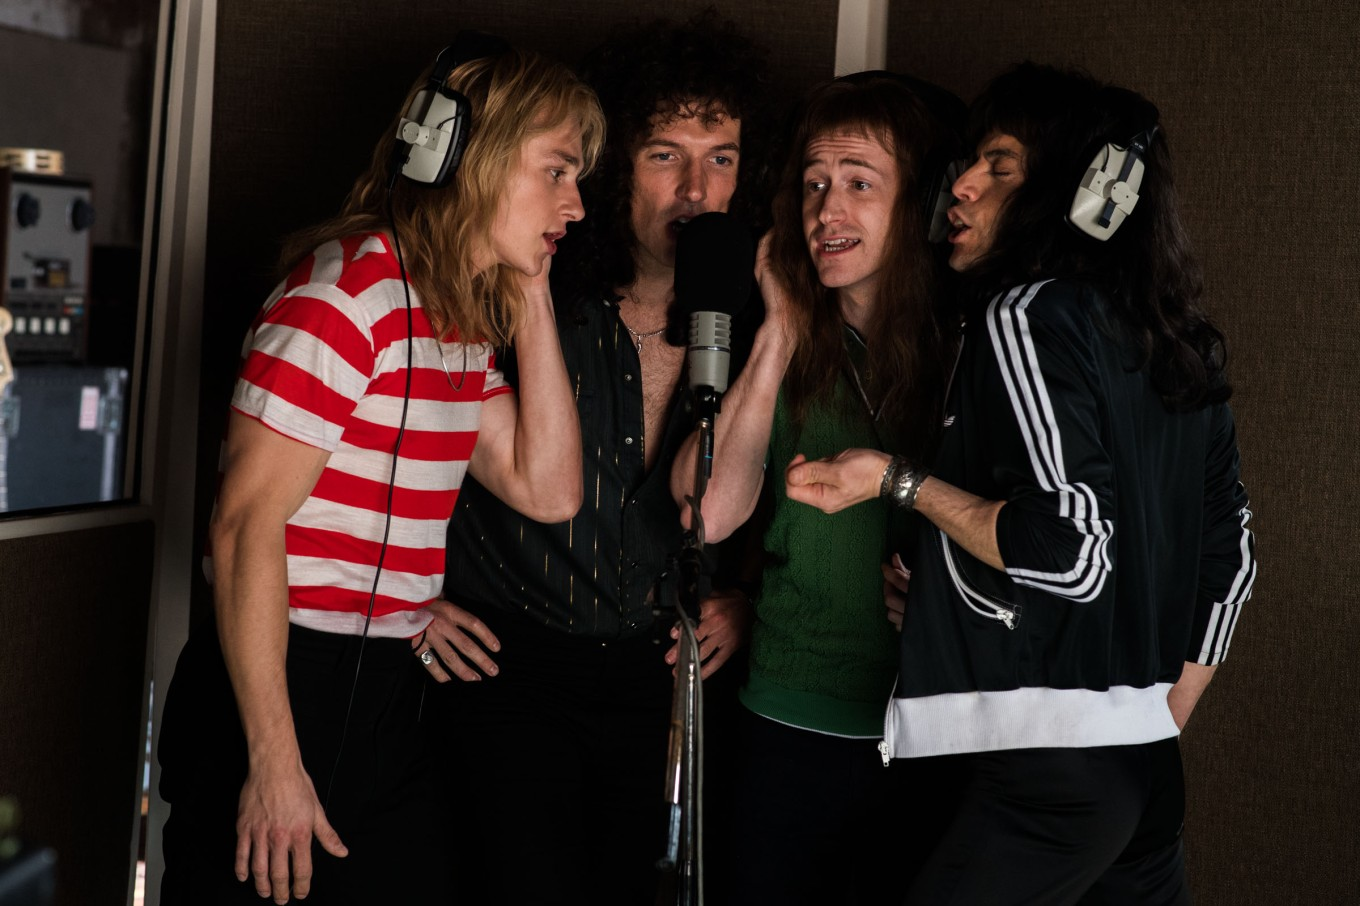 Queen band (actors) ben hardy, gwilym lee, joe mazzello, rami malek BOHEMIAN RHAPSODY